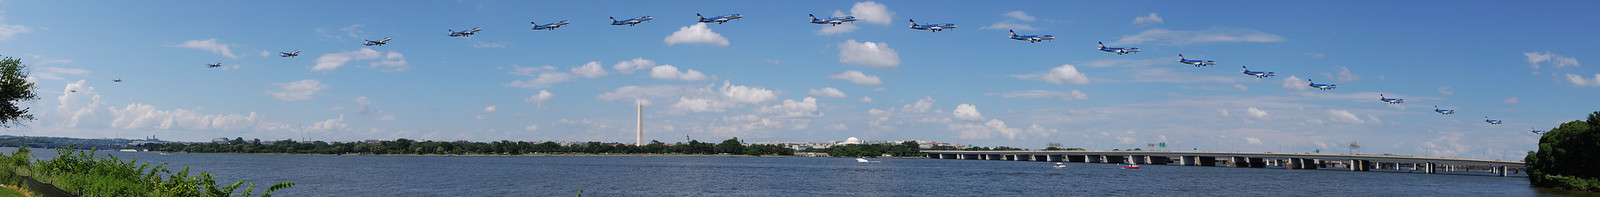 Panorama of a plane coming in for a landing over the Potomac. View the full version here: http://photos.kevinworkman.com/Pictures/2011/i-SQfJbV5/0/O/PlanePanorama498.jpg